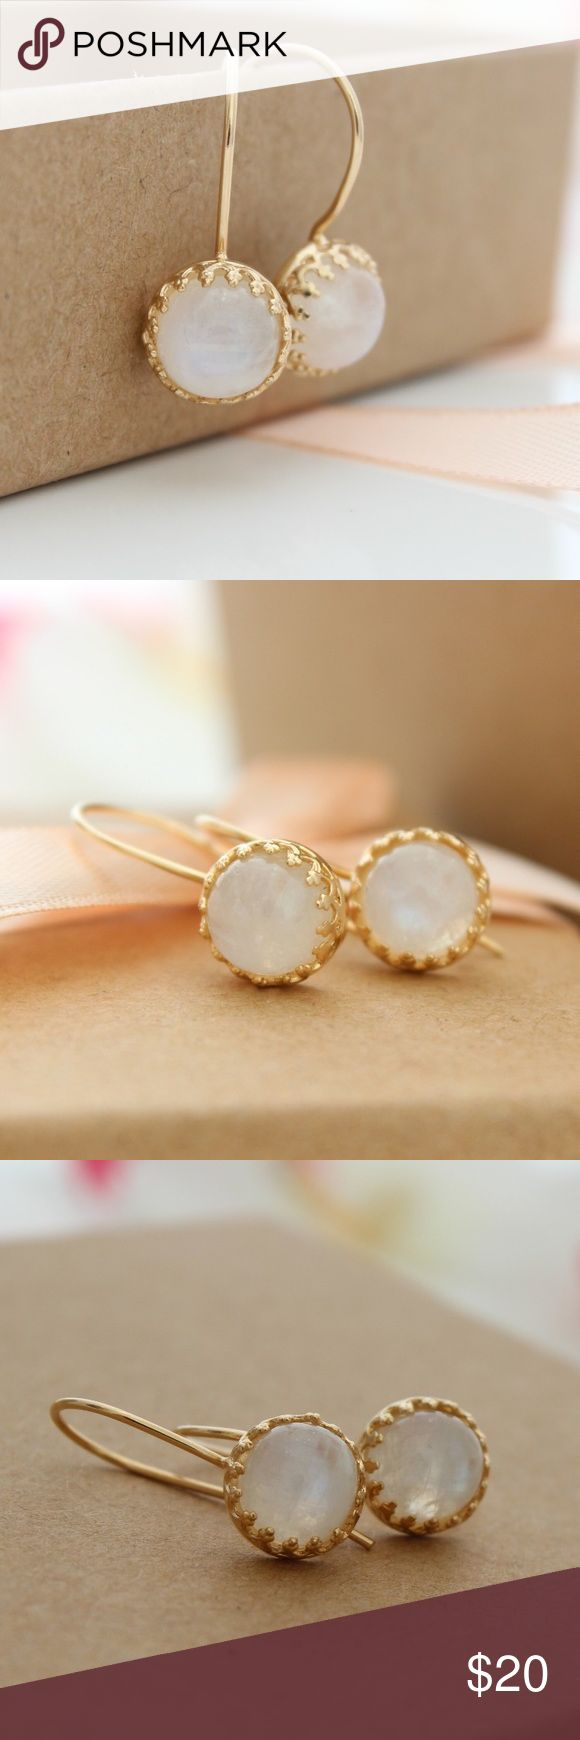 Moonstone Earrings Delicate moonstone earrings features color changing moonstone gemstones set in delicate gold earrings.  Gemstone size: 8mm. Earrings length: 23mm, 0.8 inch. Ear hooks: 14K gold filled. Settings: High quality 14K gold plated brass. DYOSARA Jewelry Earrings